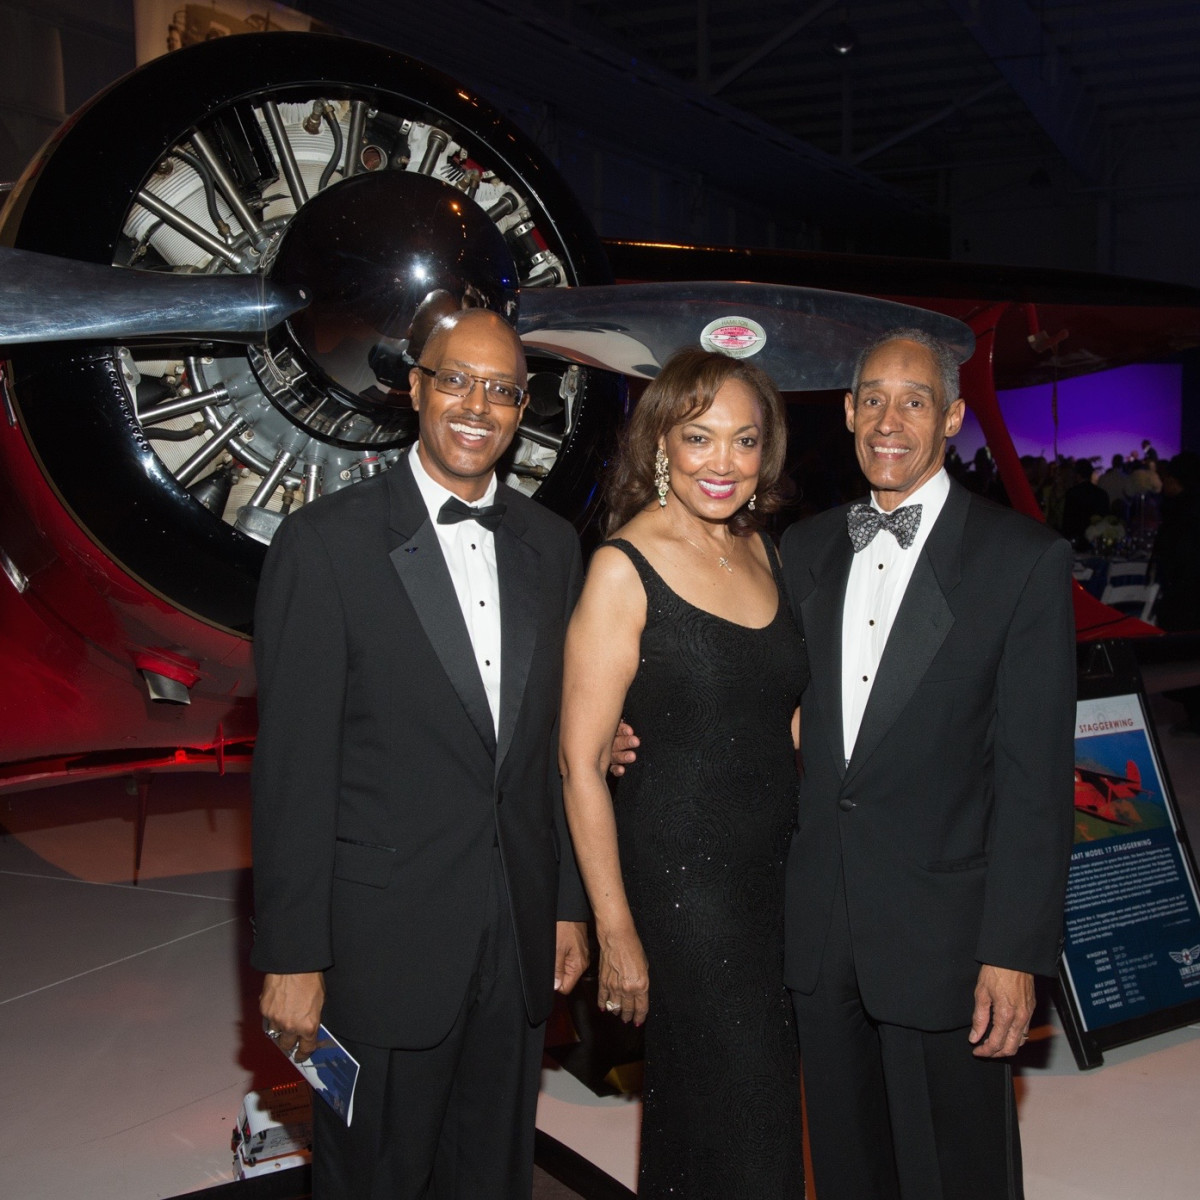 Lone Star Flight Museum gala 5/16 George Hanks, Angela Joubert, Cedric Joubert